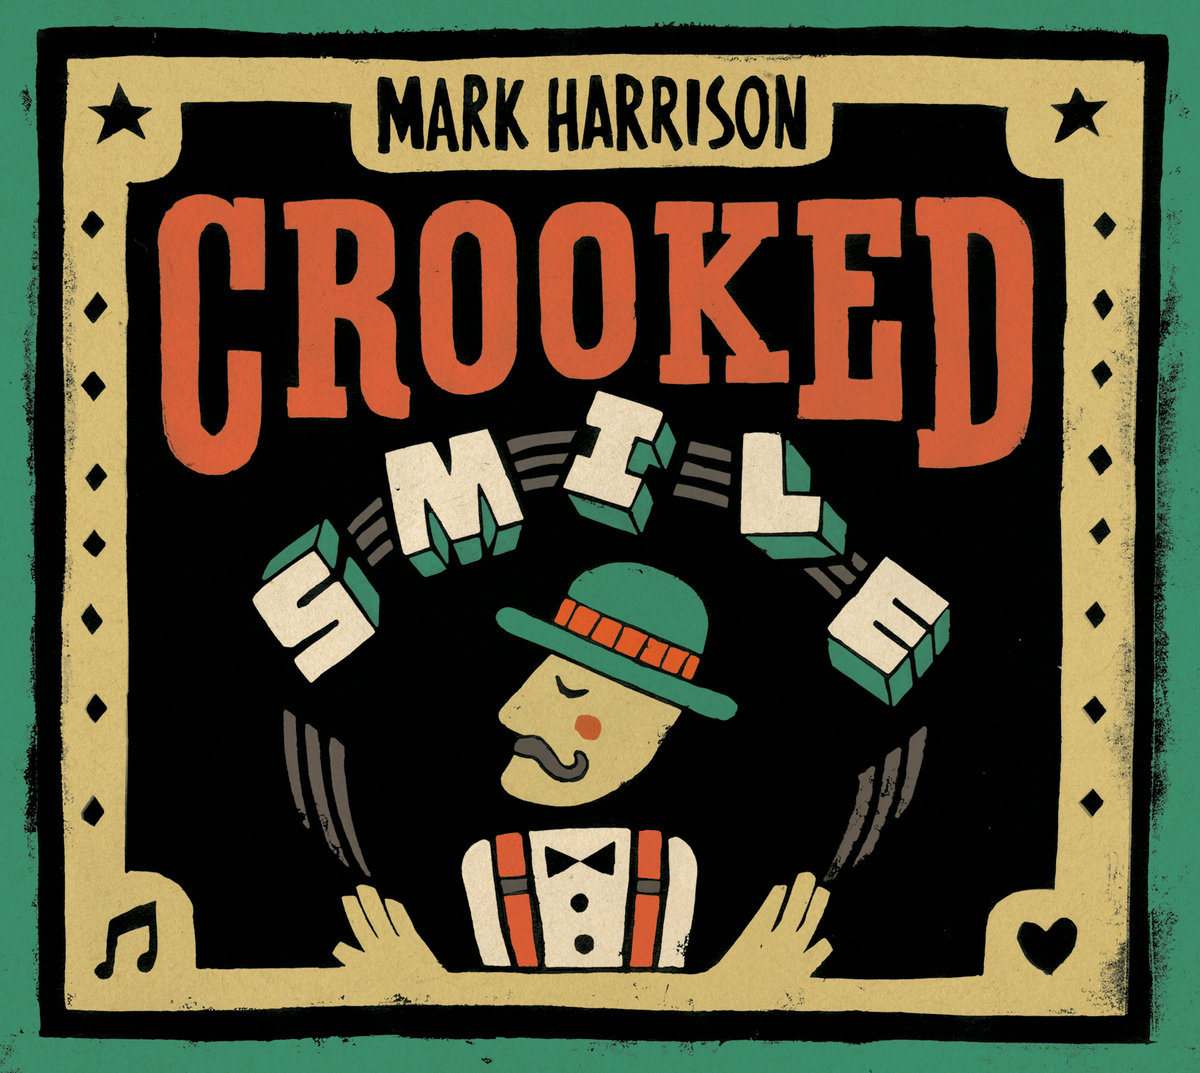 Crooked smile instrumental mp3 download